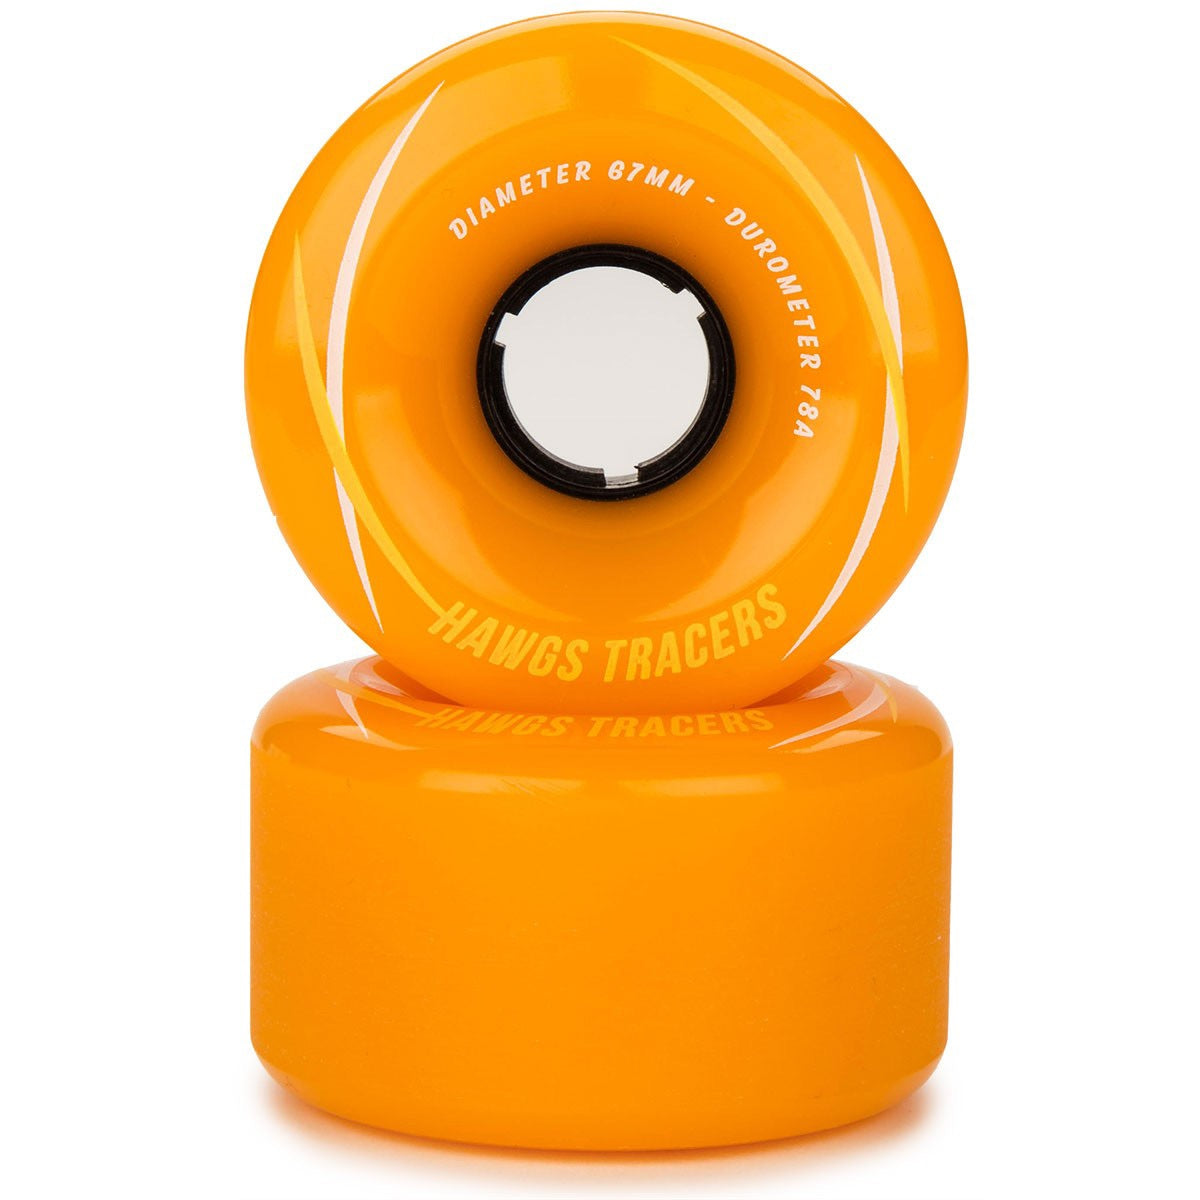 67mm 78a Hawgs Tracers orange